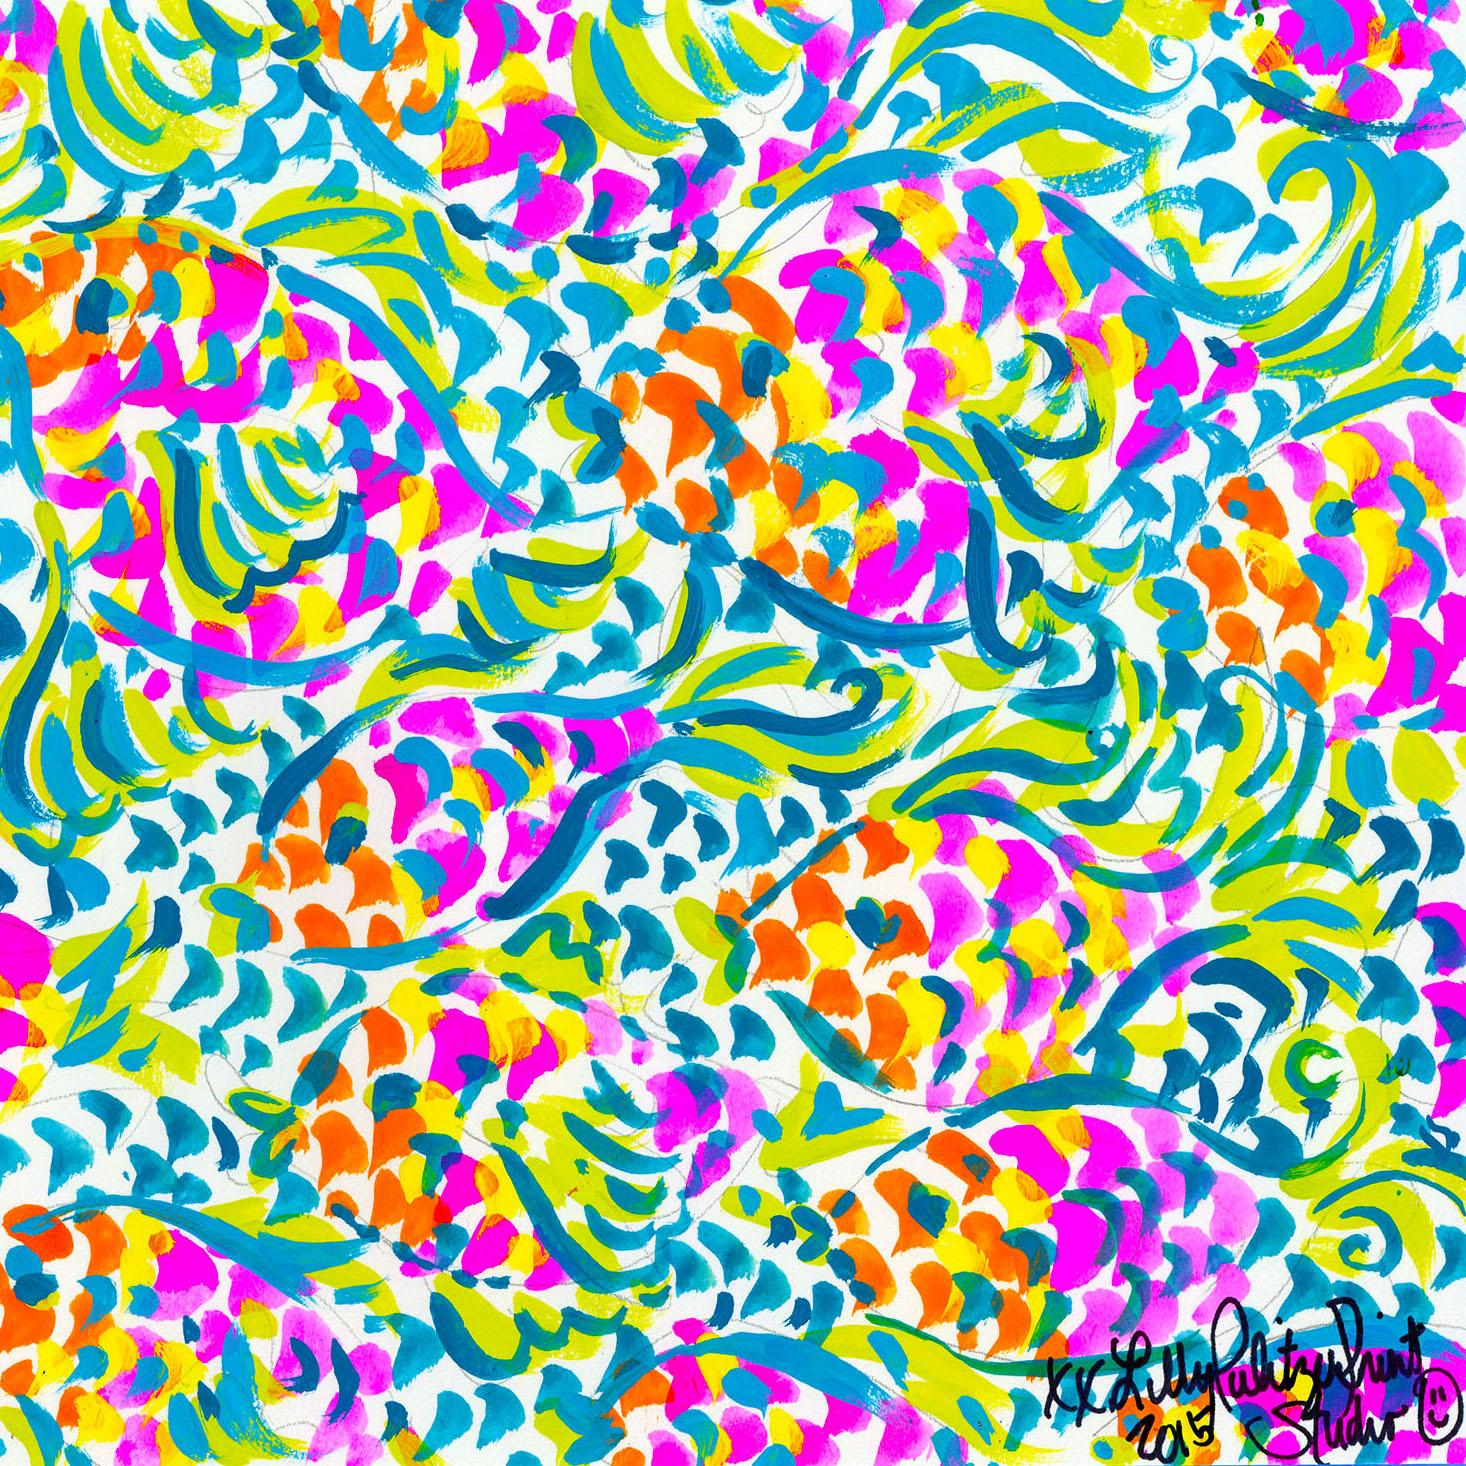 "Lilly Pulitzer on Twitter: ""Keeping it reel. #Lilly5x5 ..."